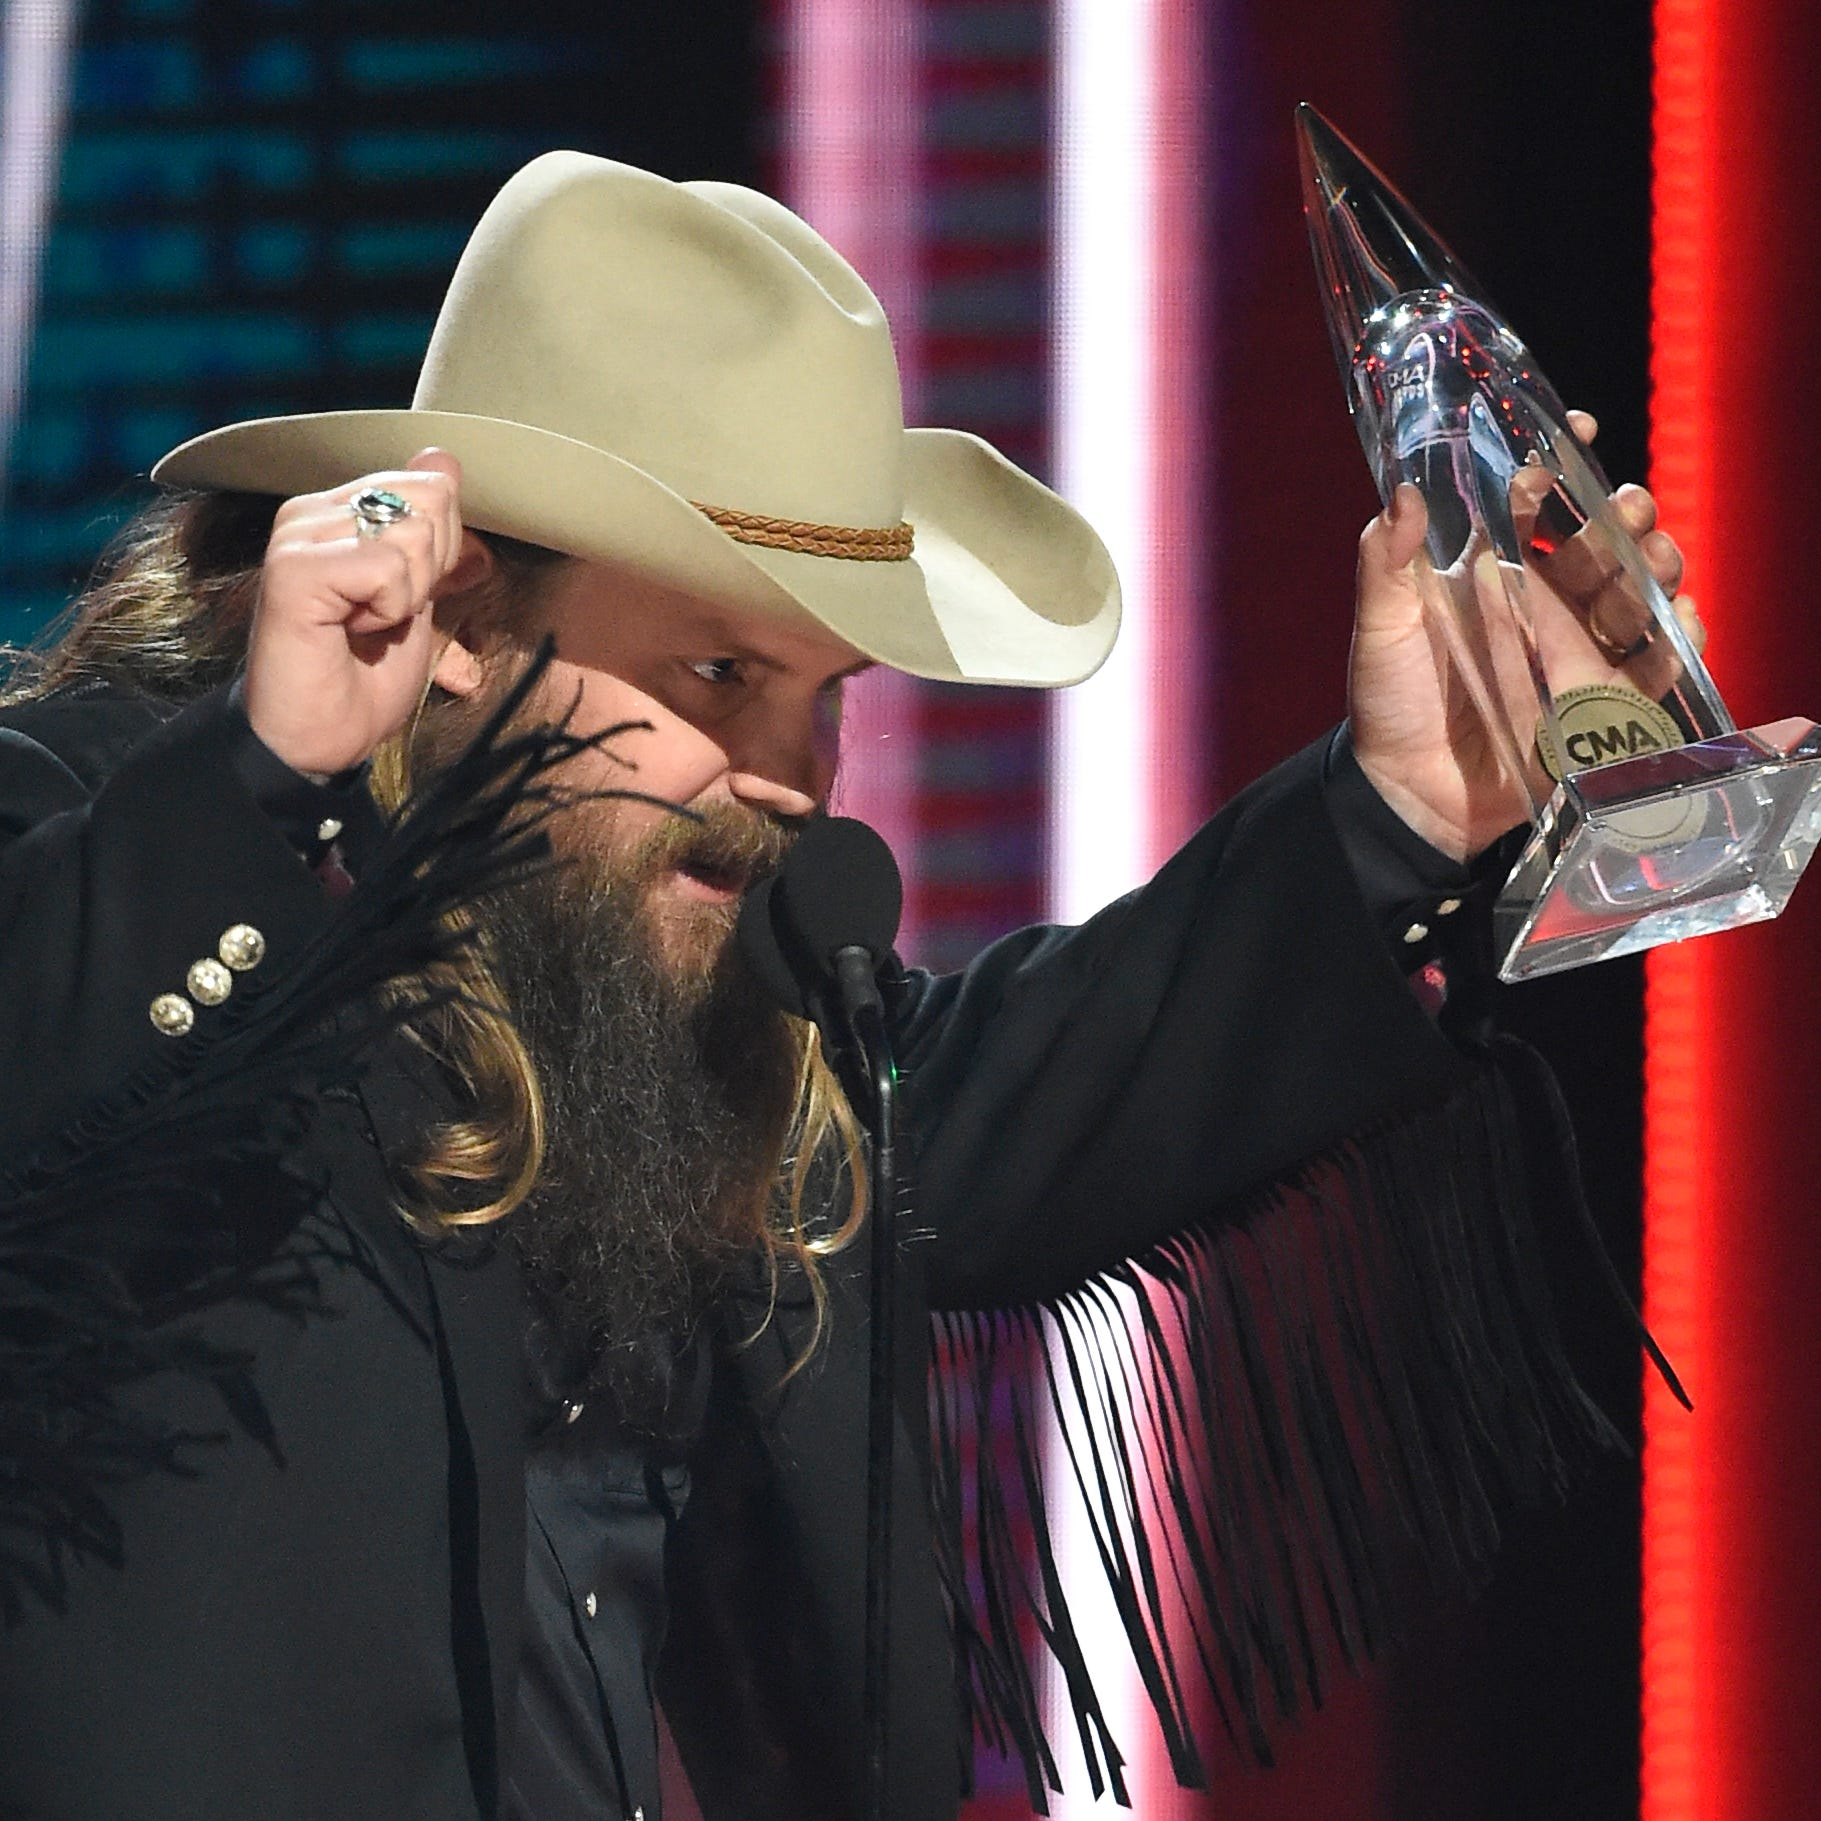 Kentucky native Chris Stapleton wins big at CMAs 2018